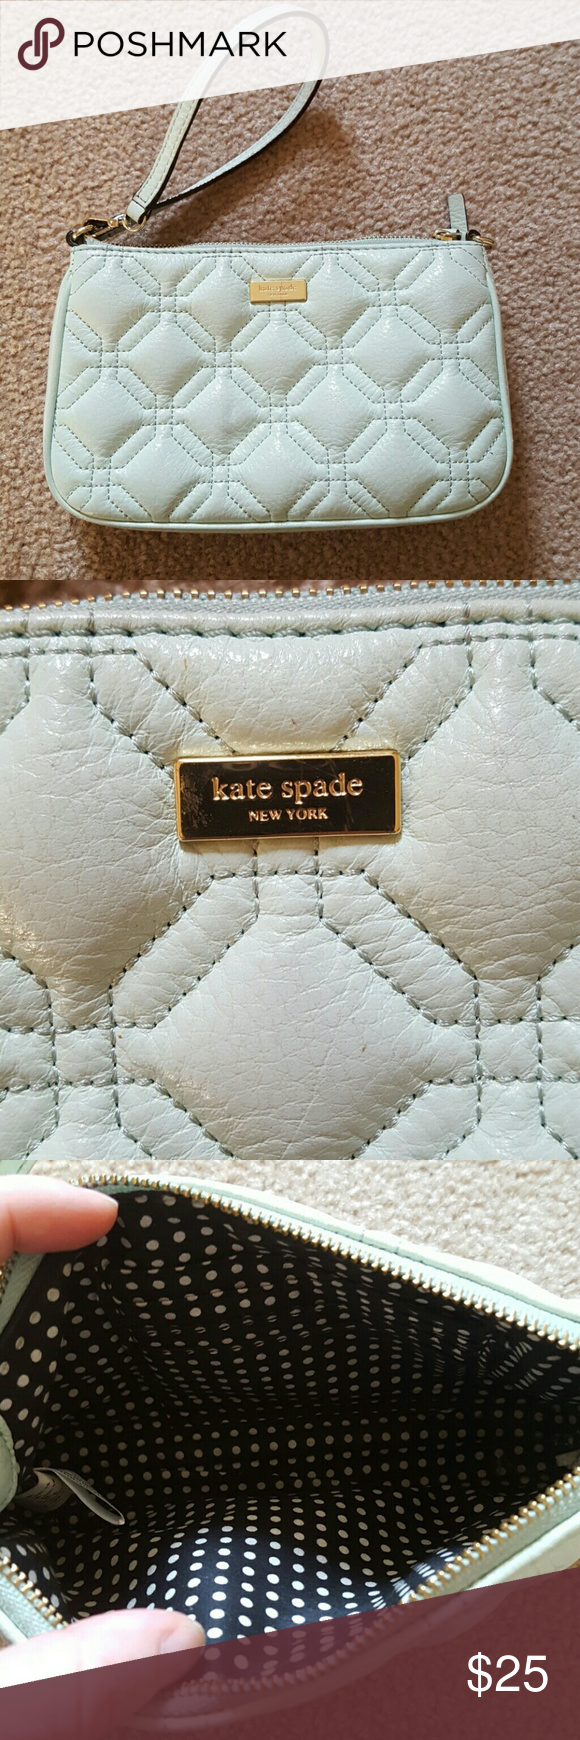 Mint Kate Spade Wristlet Gently Used Condition. Mint in color. Larger size. Fits my galaxy S6 and more. kate spade Bags Clutches & Wristlets